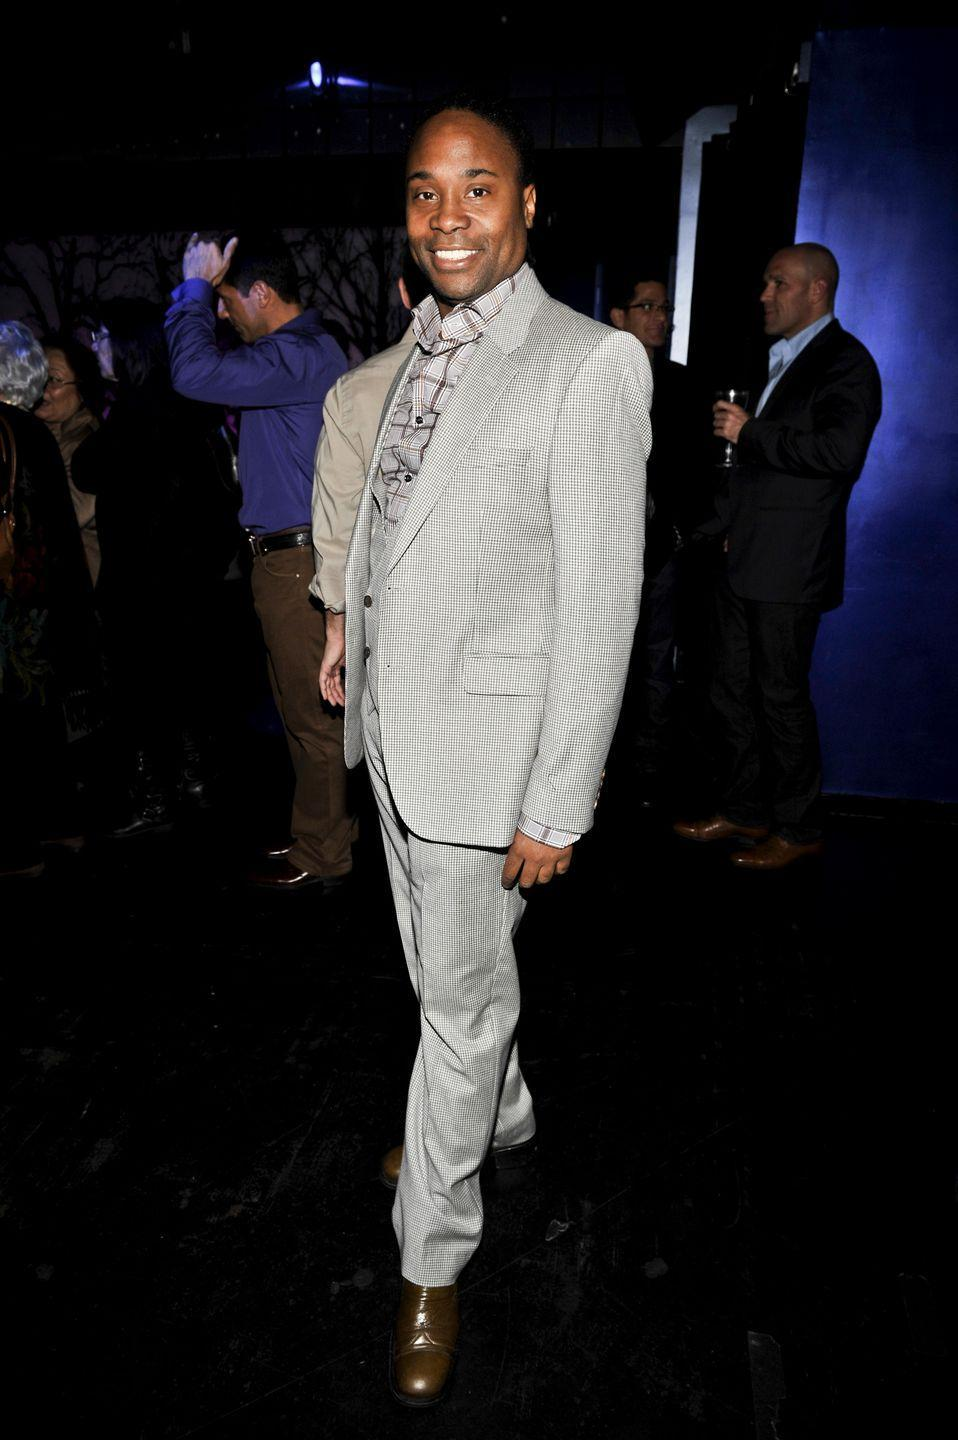 <p>Porter poses at the Broadway Takes the Runway event in a checkered button-down, a gray suit, and brown boots. </p>